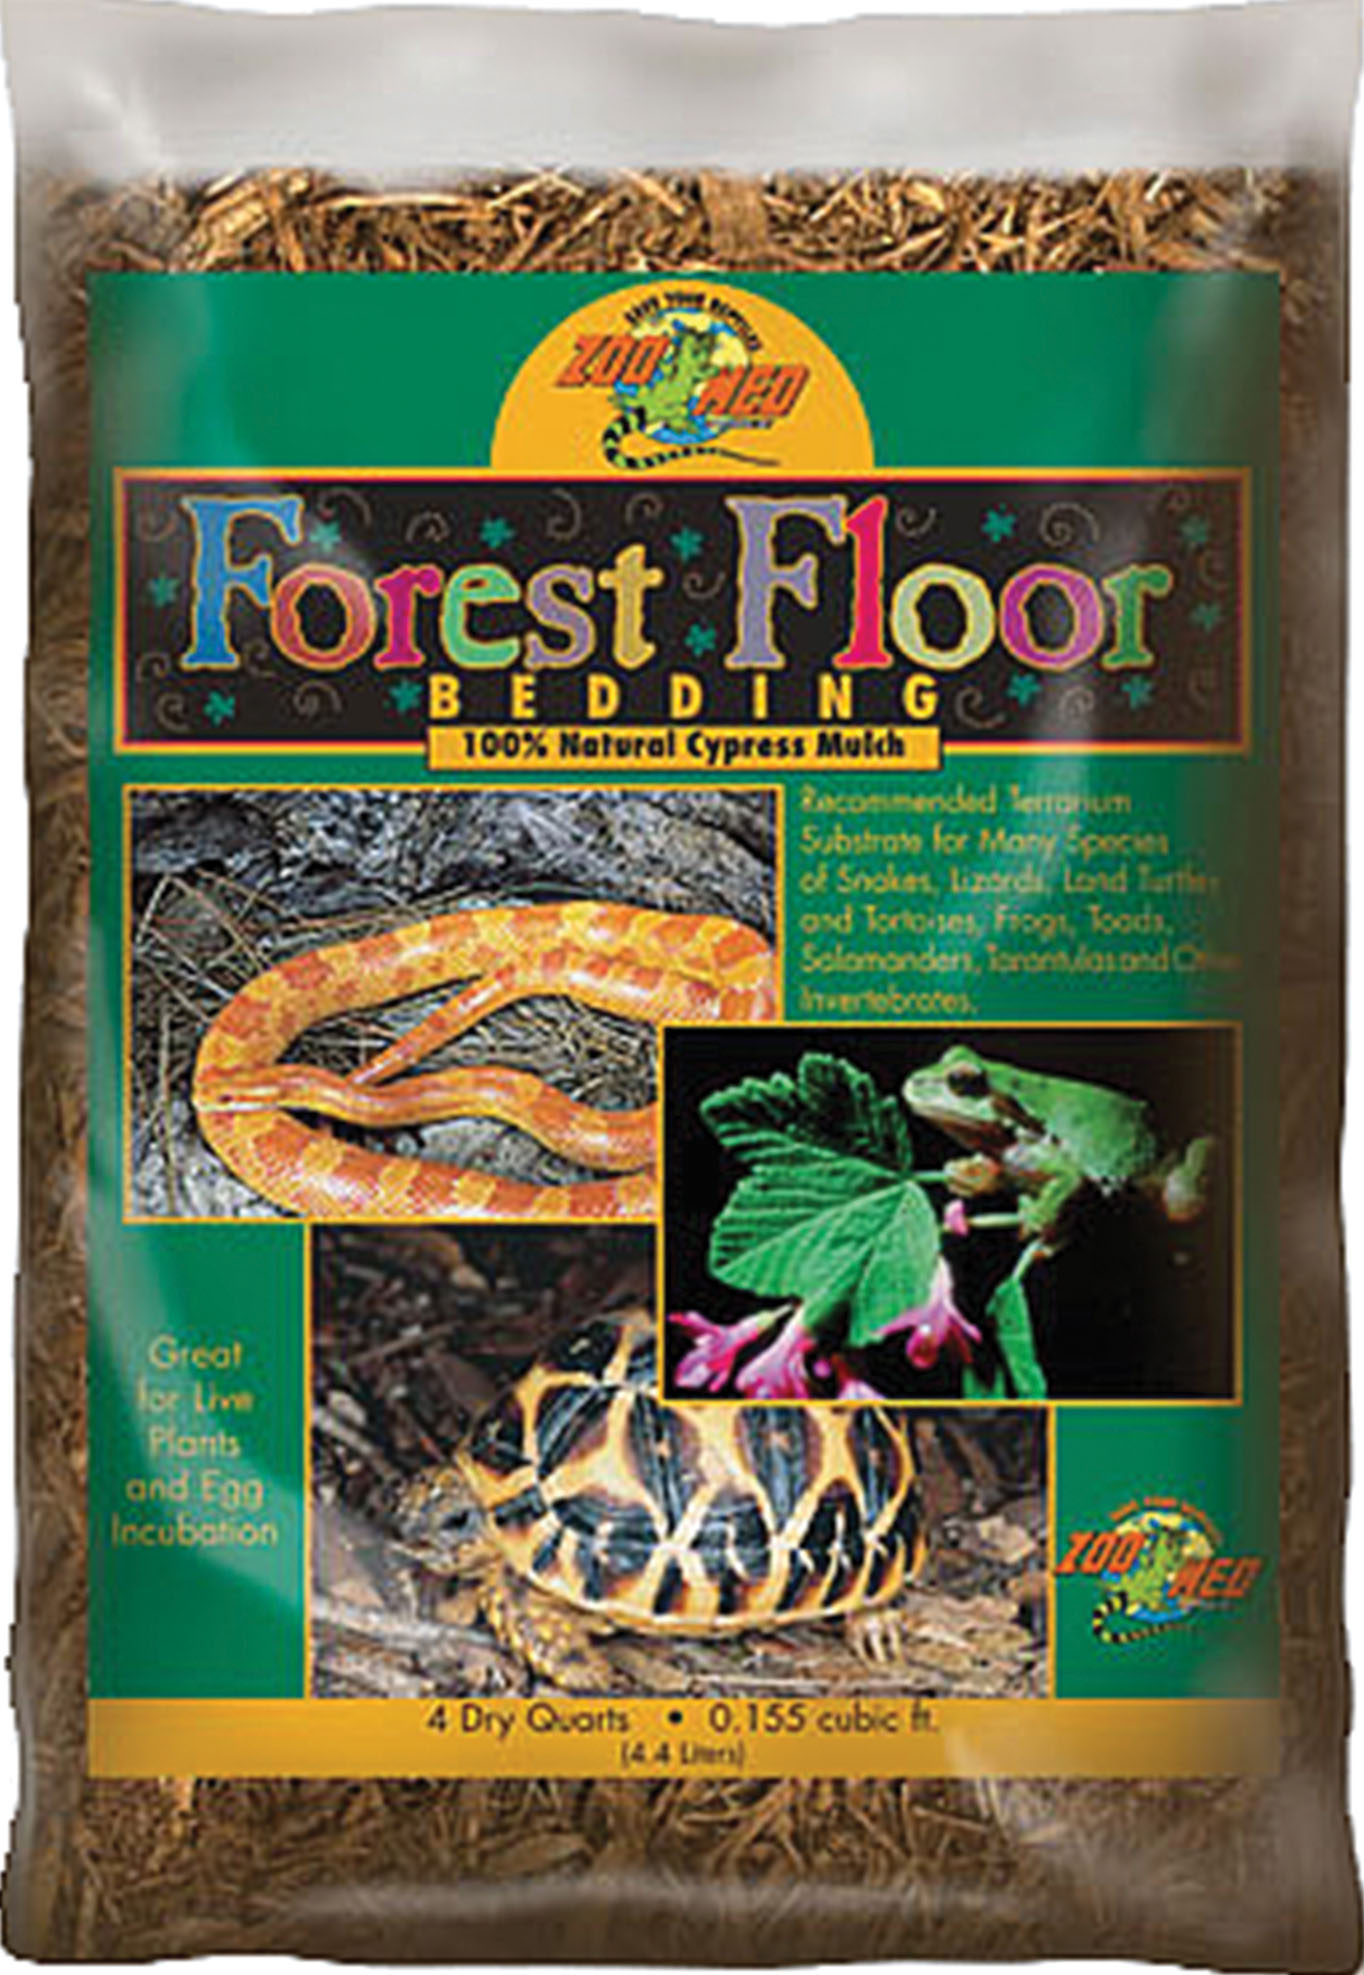 Zoo Med Forest Floor Natural Cypress Mulch Reptile Bedding, 4-qt bag